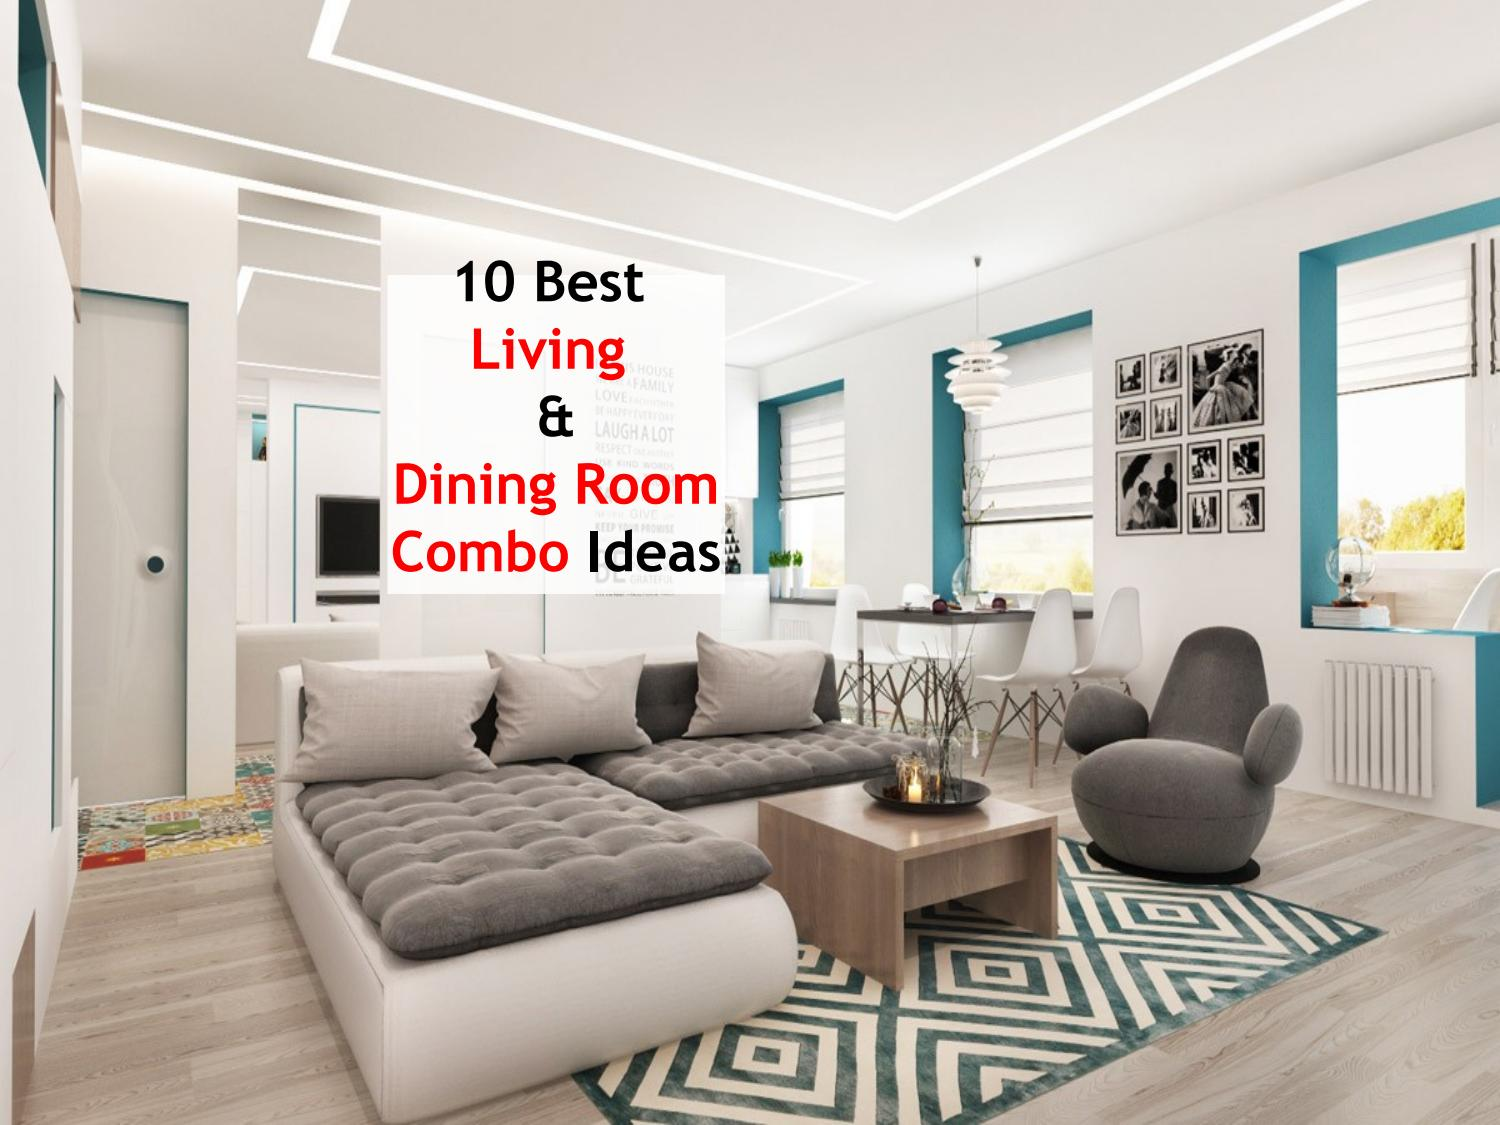 10 Best Living And Dining Room Combo Ideas 91 9717473118 By Ankit Kapoor Issuu